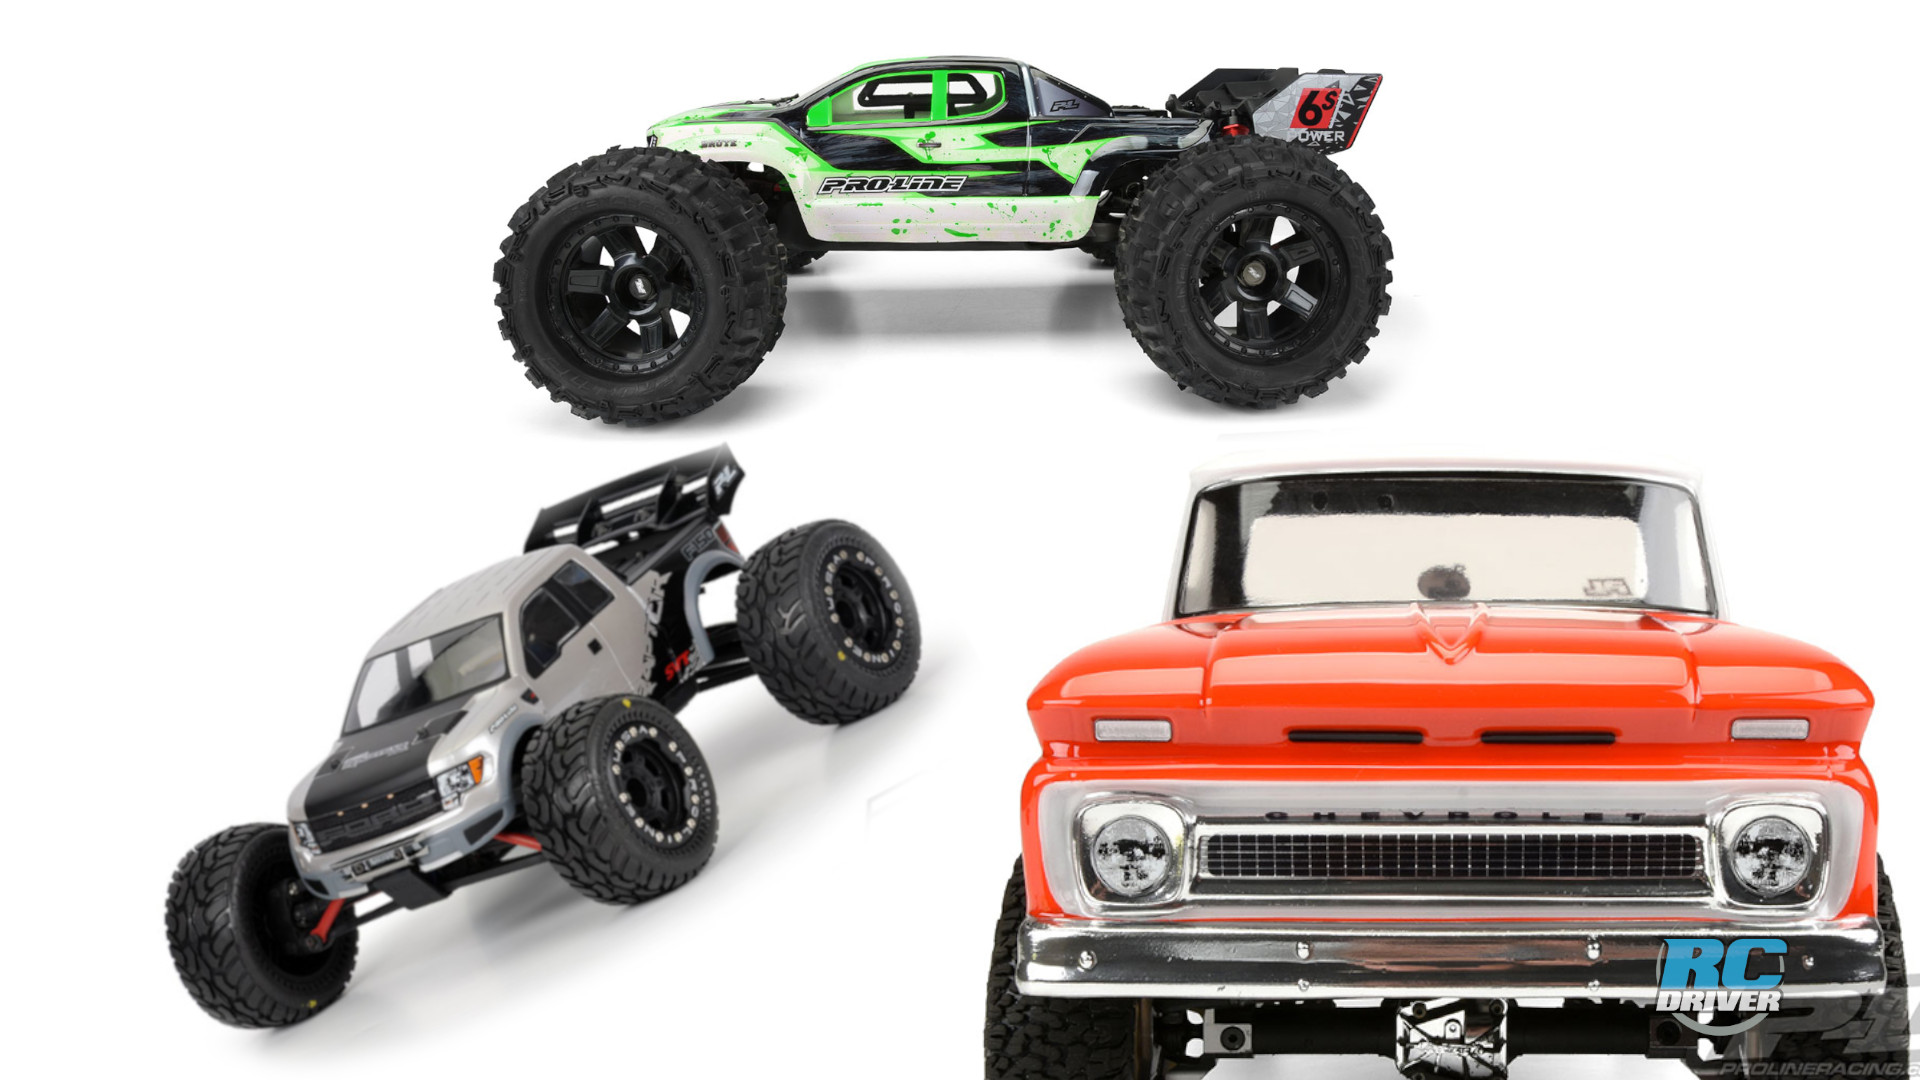 Transform your RTR with Pro-Line aftermarket parts